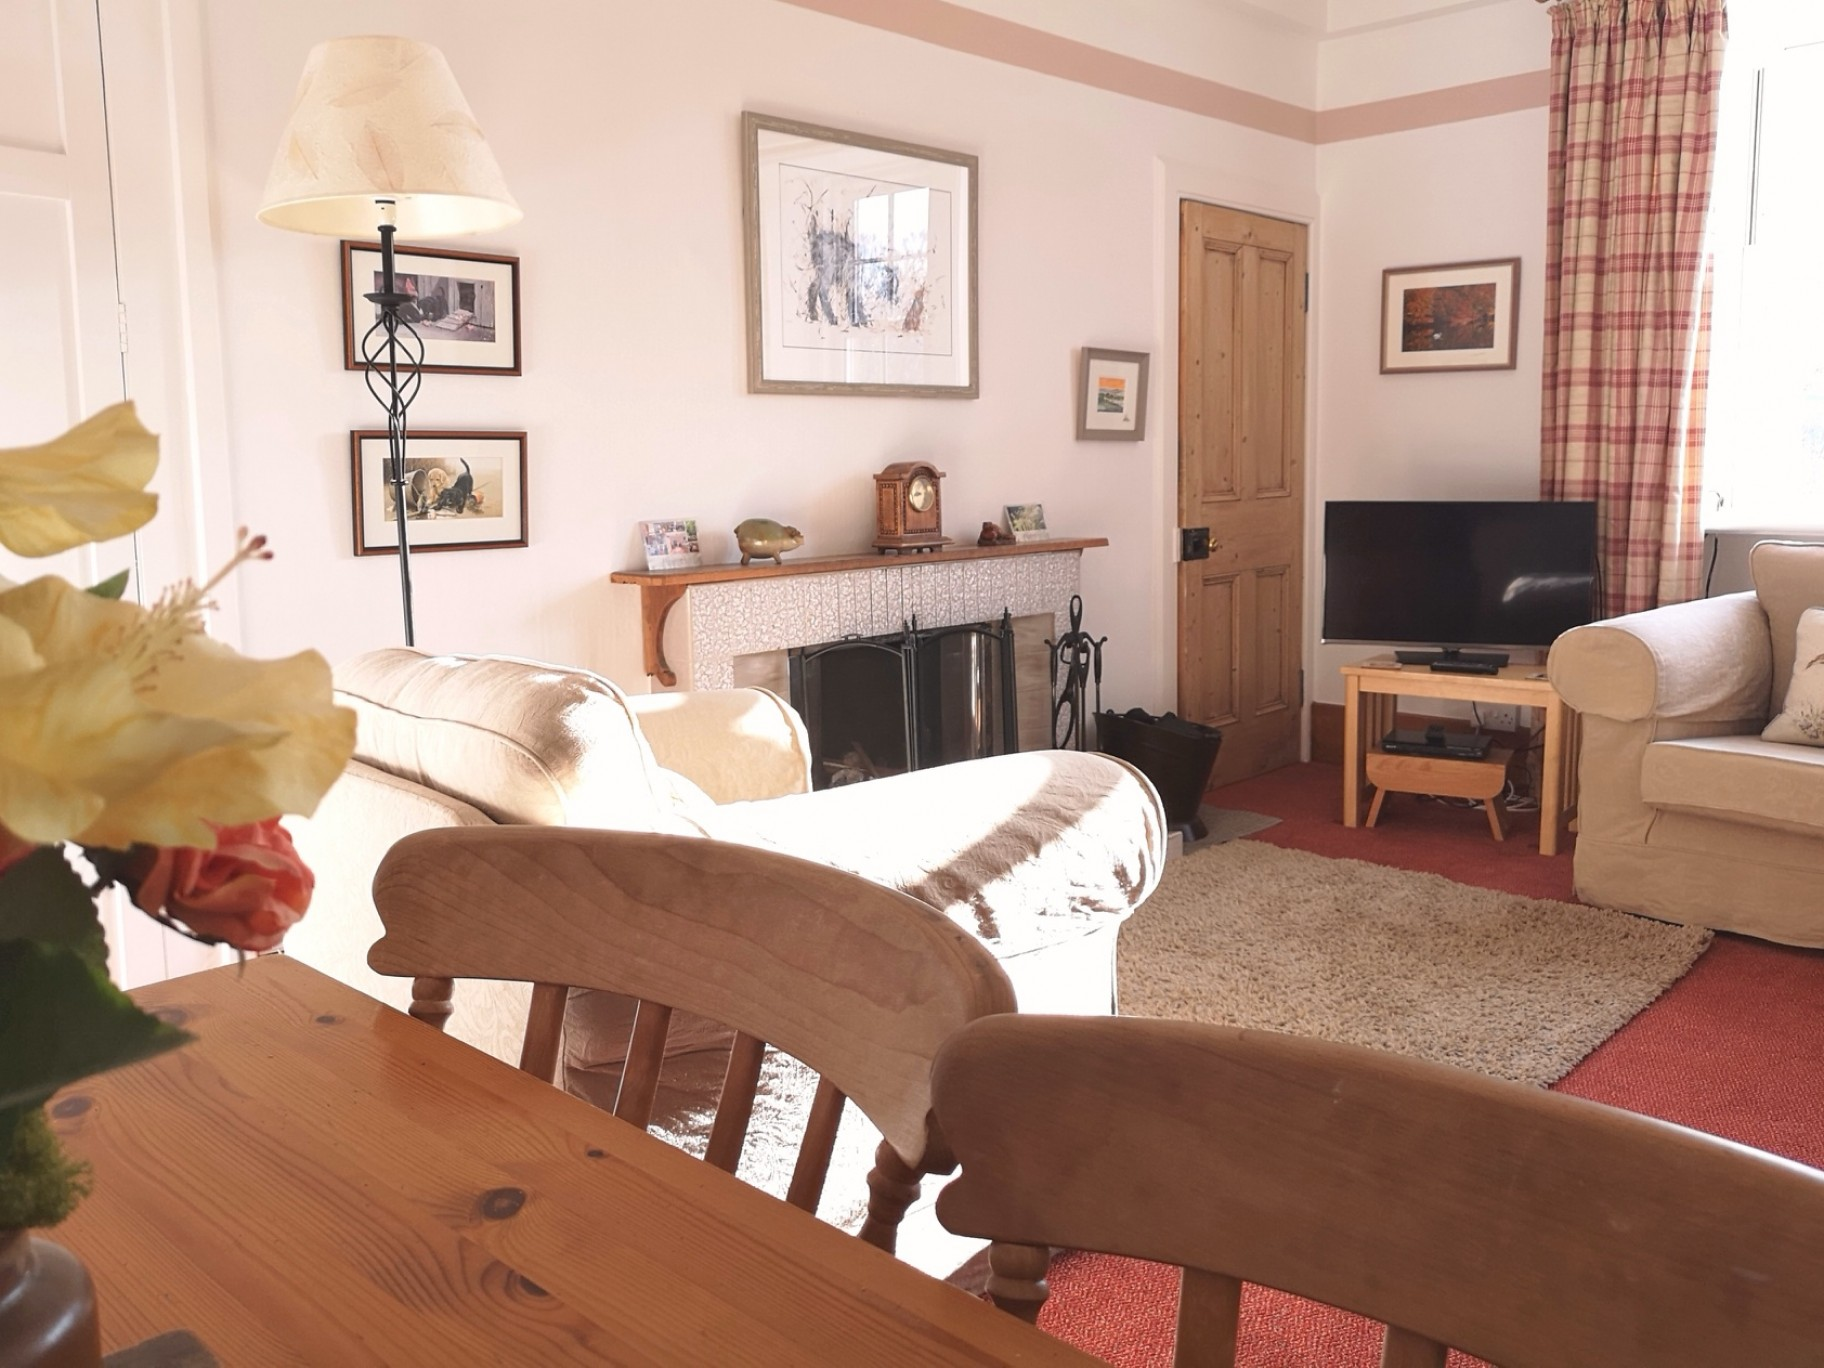 Hendersyde Farm Holiday Cottages